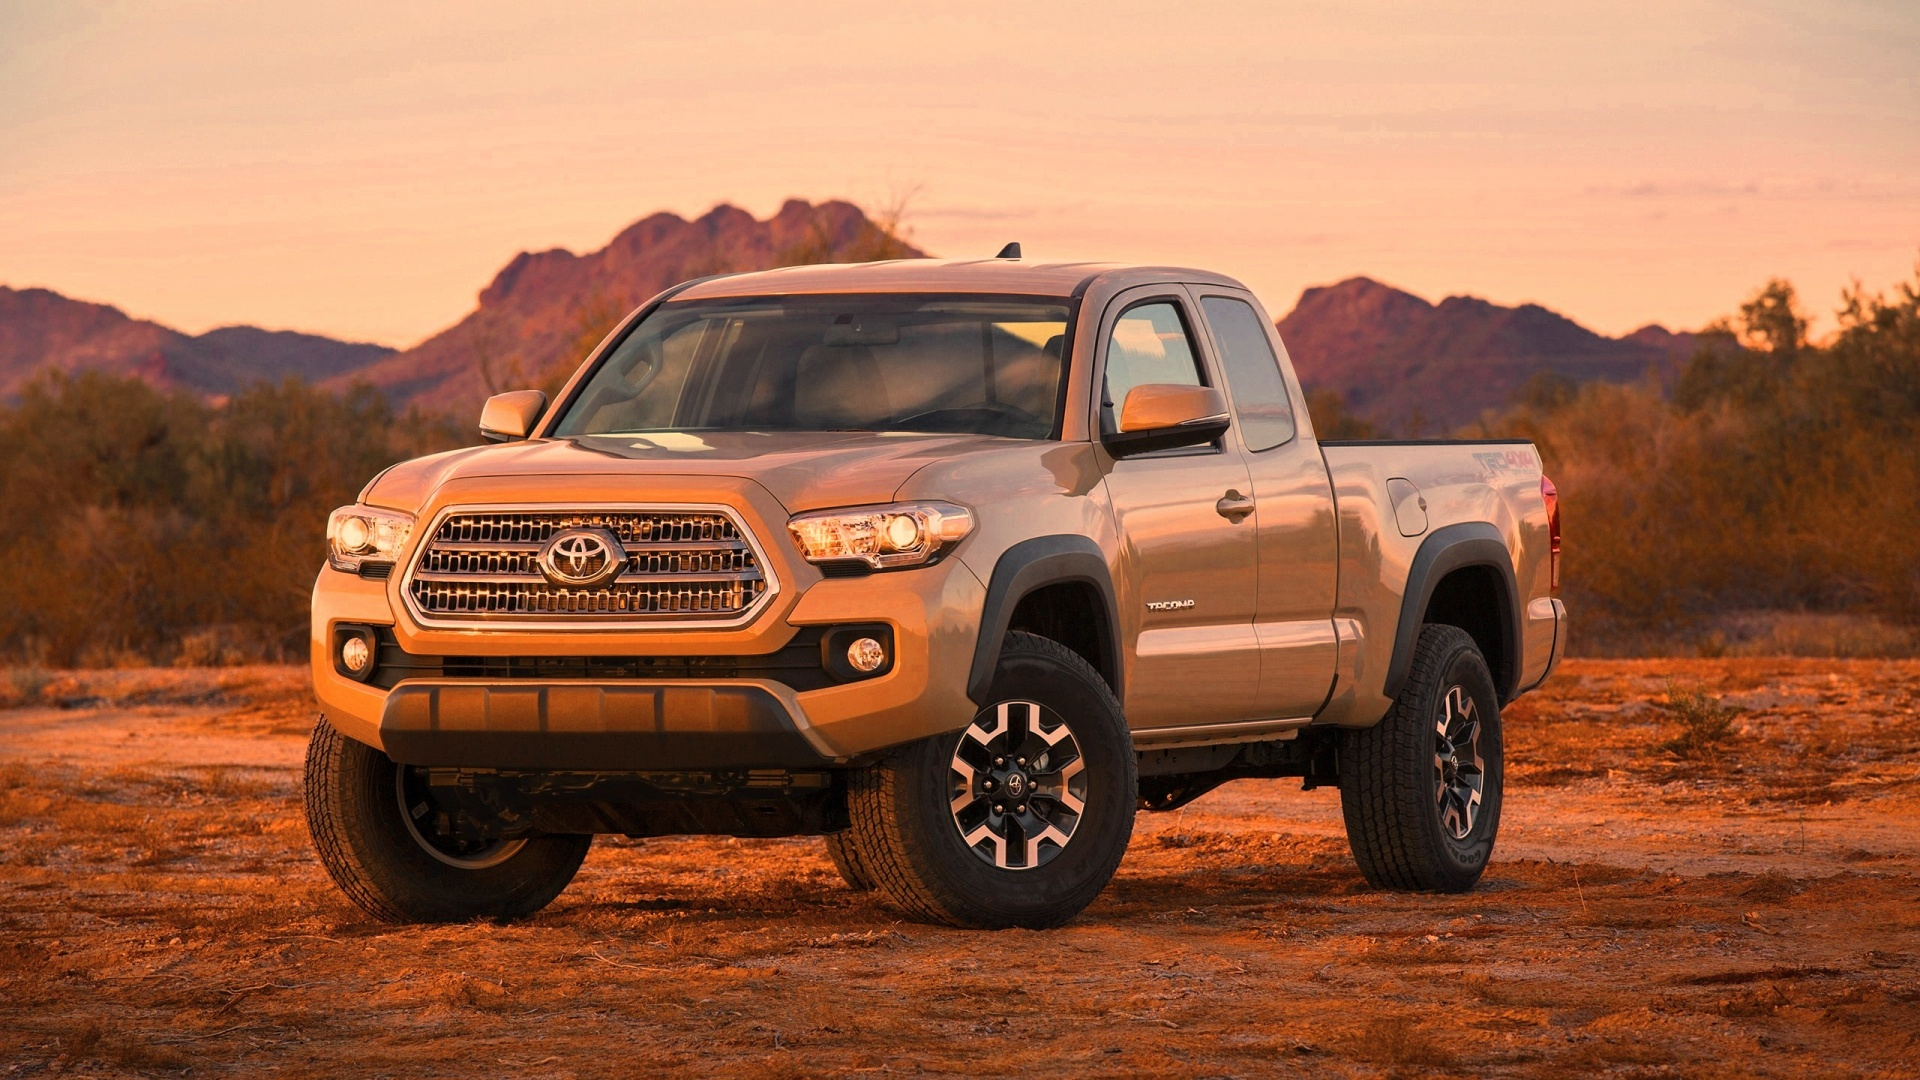 toyota tacoma trd off road 2016 1920 x 1080 download close. Black Bedroom Furniture Sets. Home Design Ideas